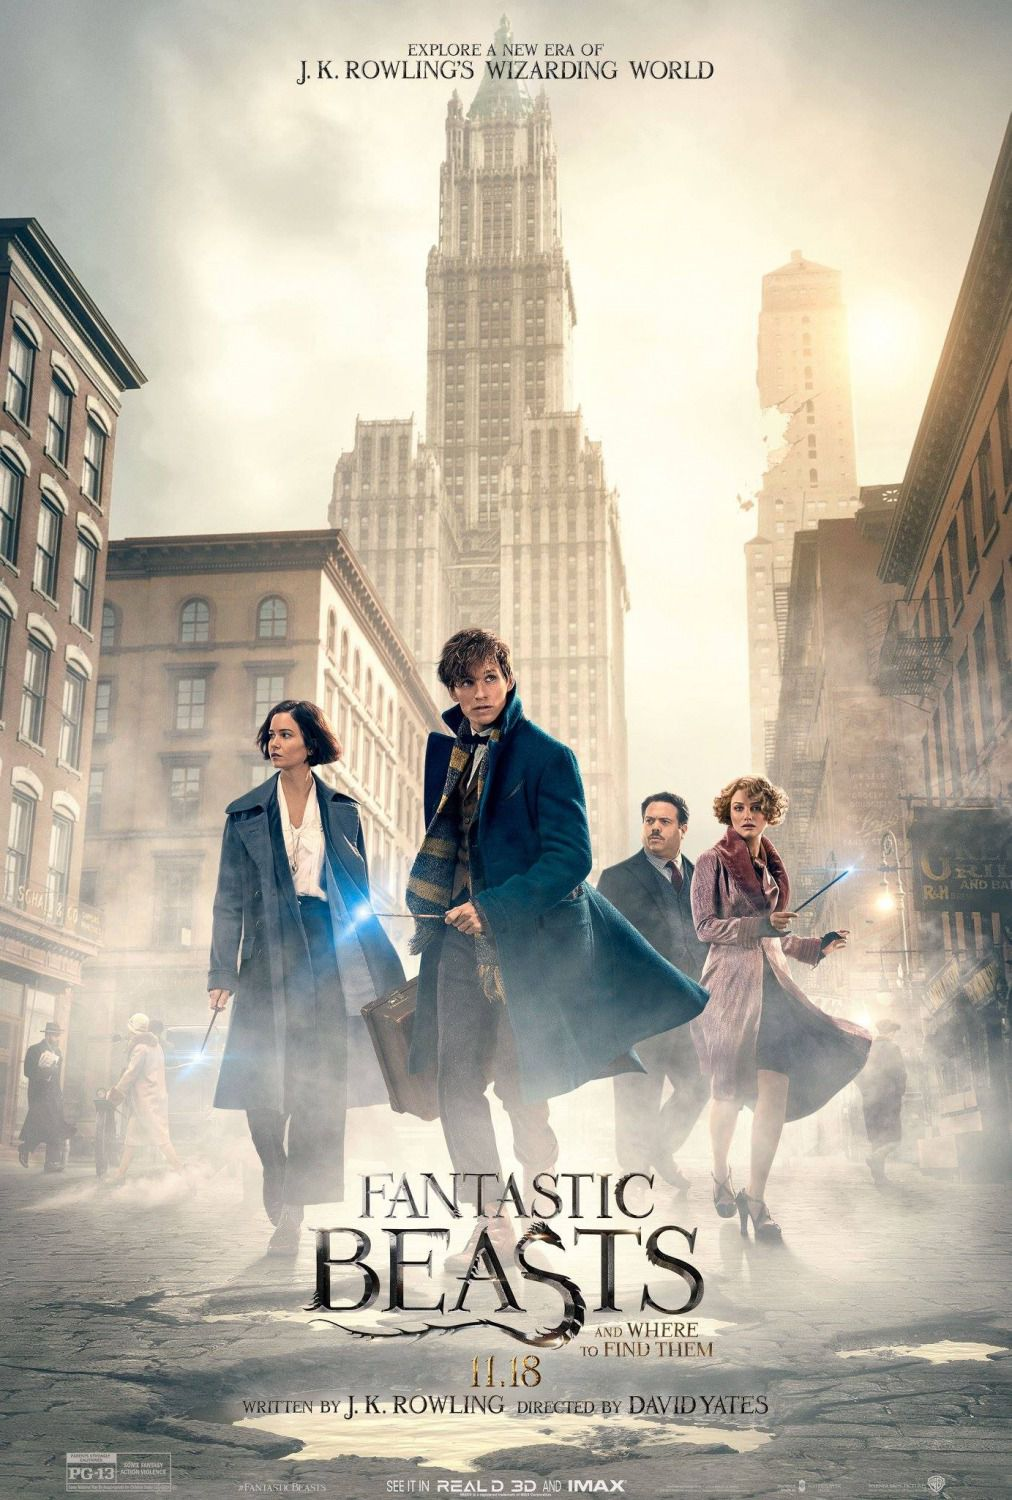 Animali Fantastici e dove trovarli - Fantastic beasts and where to find them (2016)